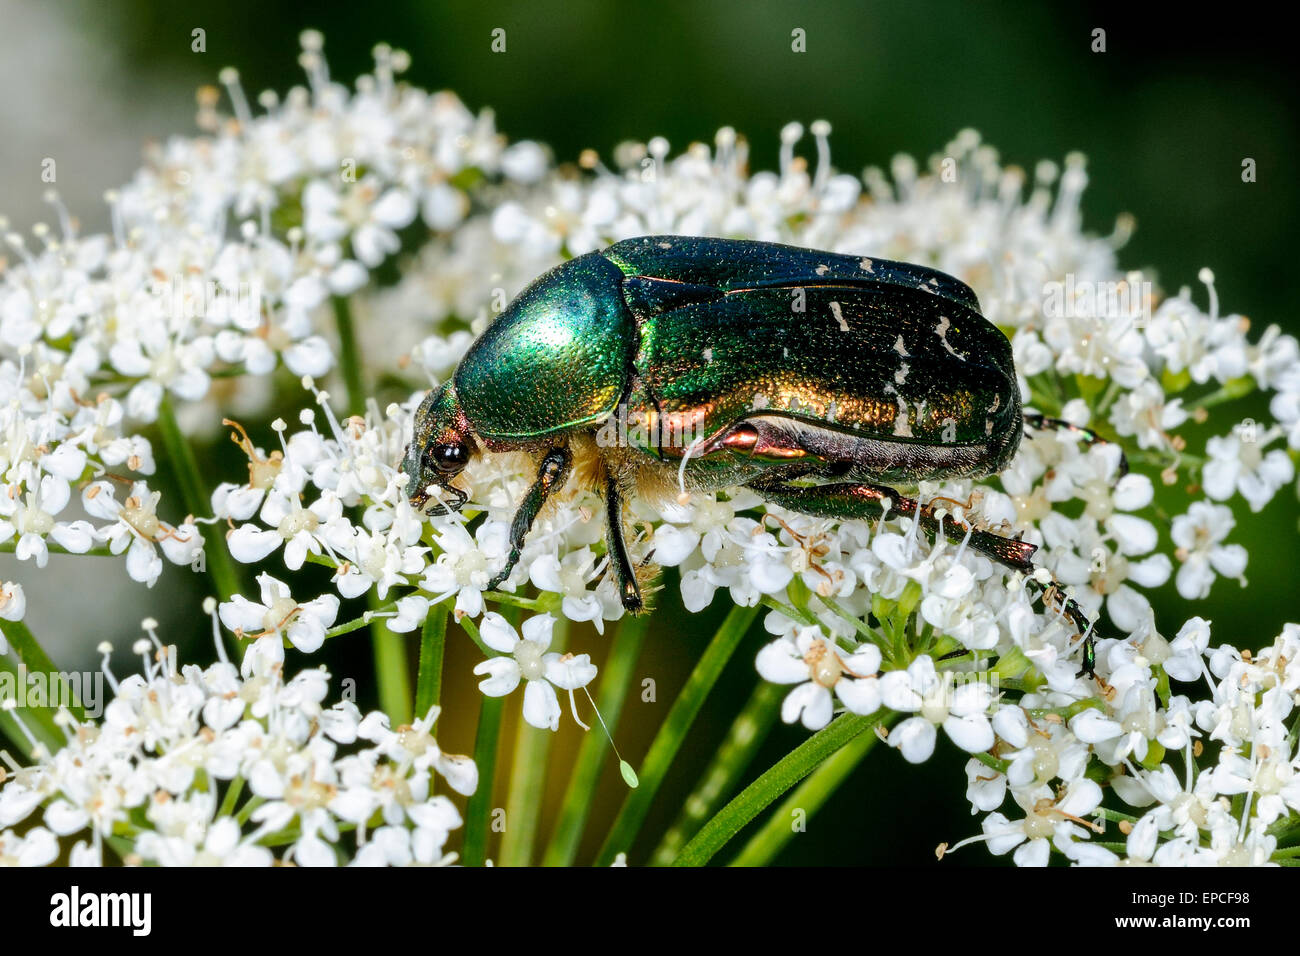 rose chafer, cetonia aurata - Stock Image